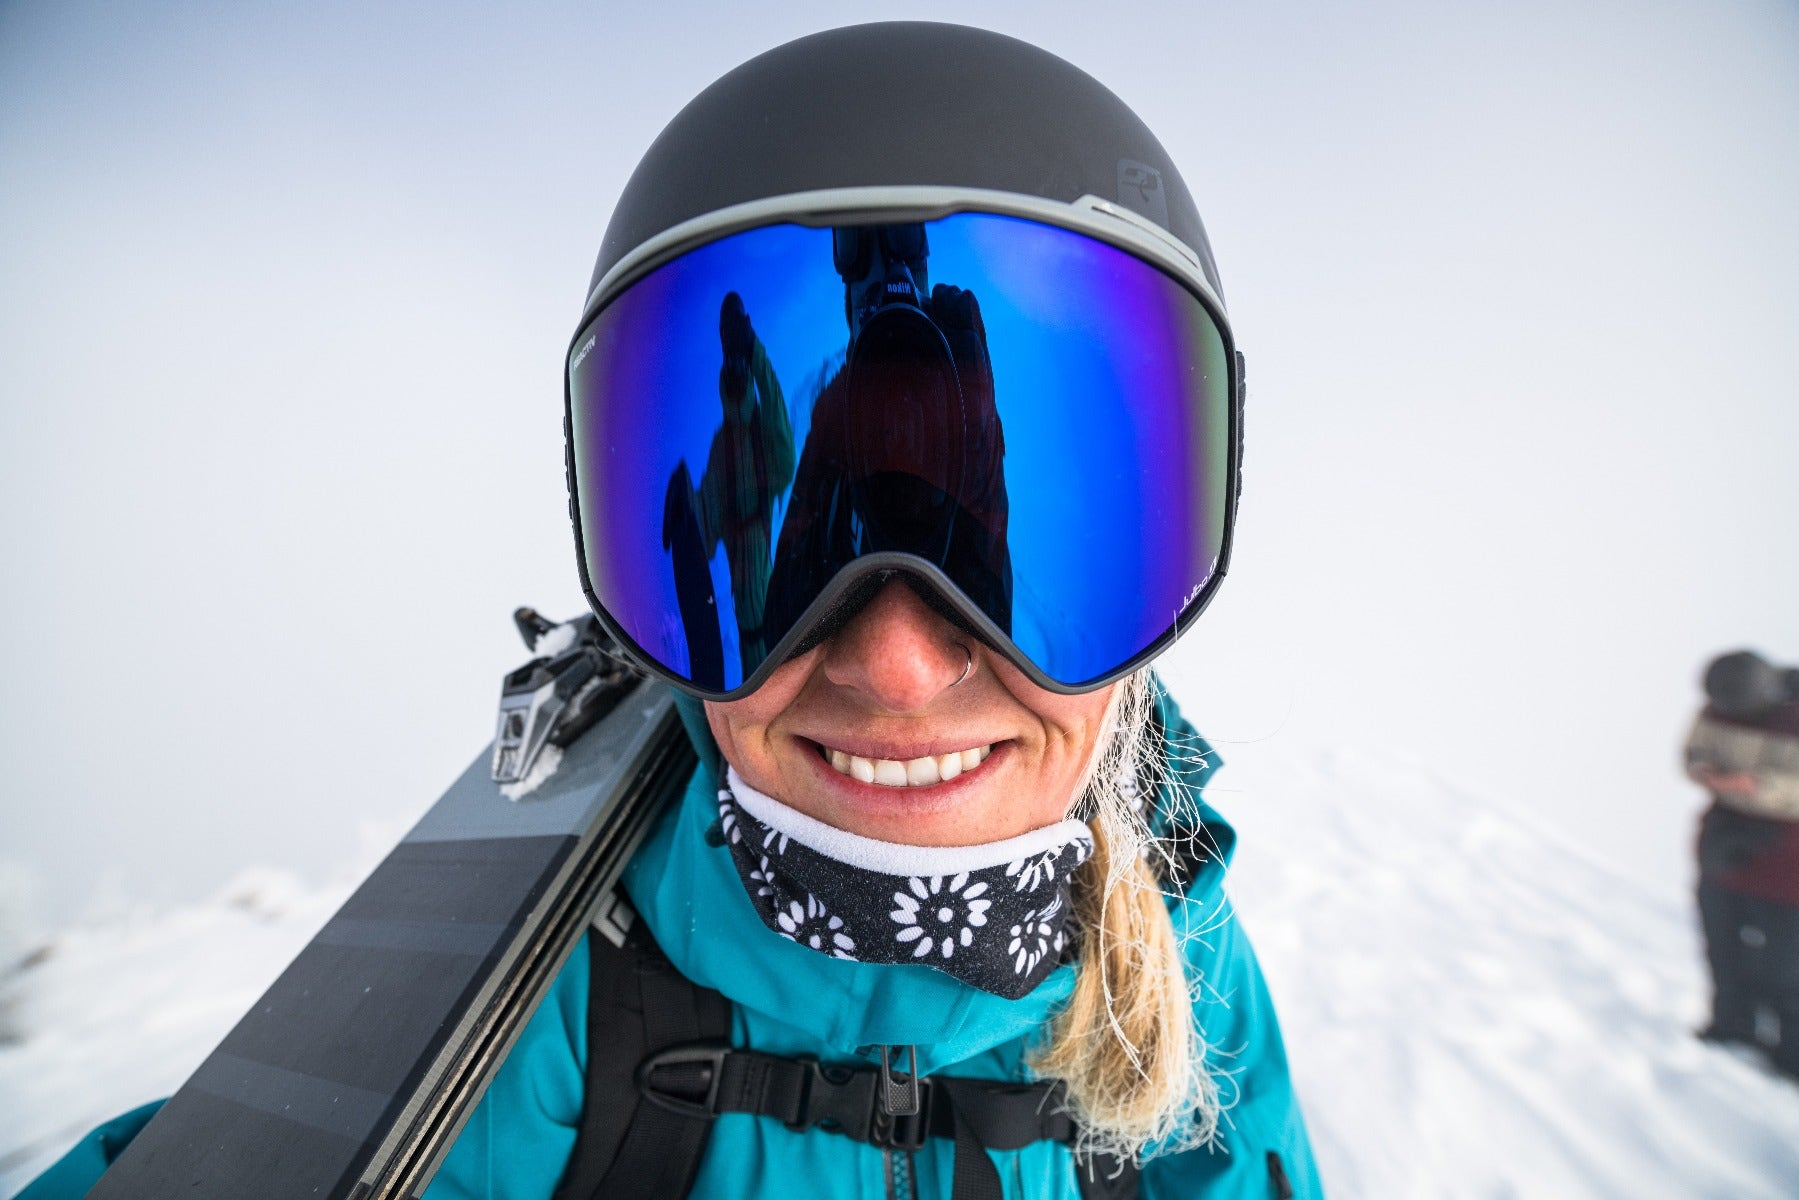 Mary McIntyre SLC Based Skier